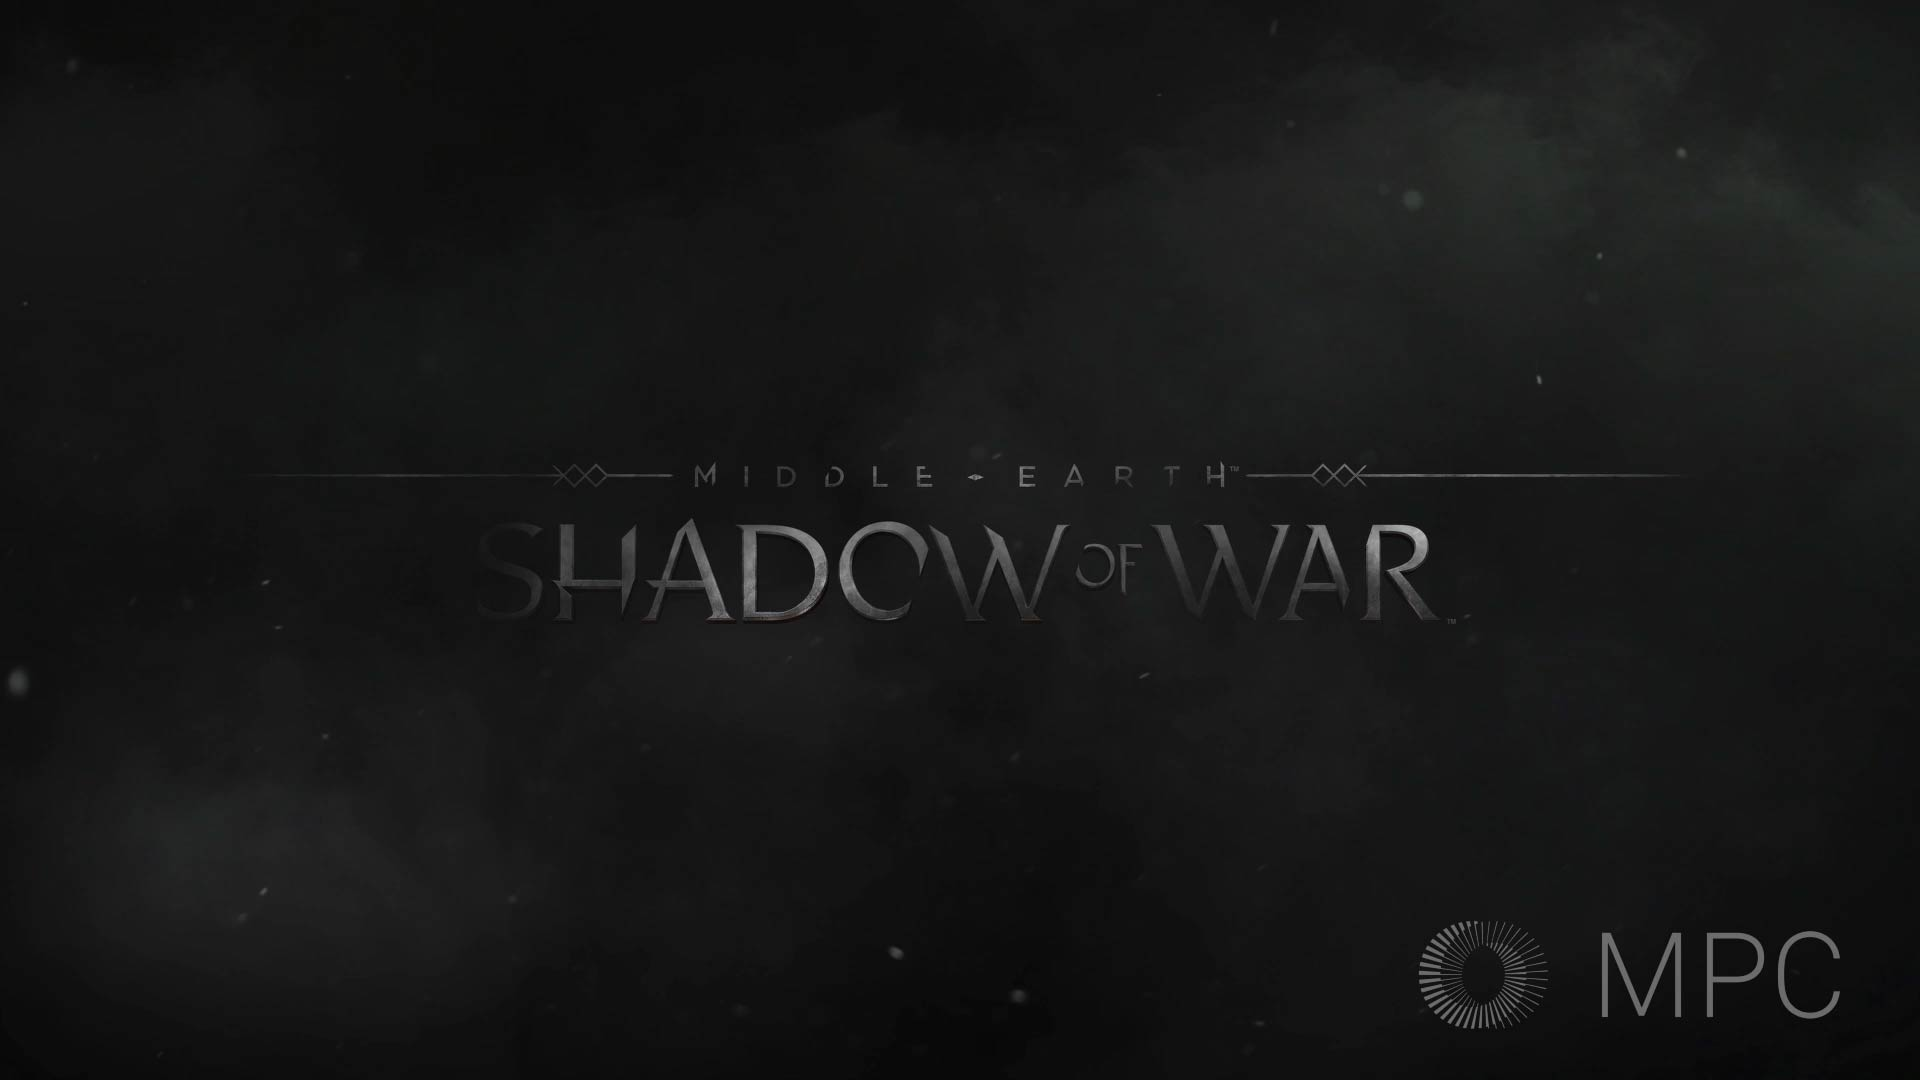 SHADOW OF WAR_TRAILER_06.jpg